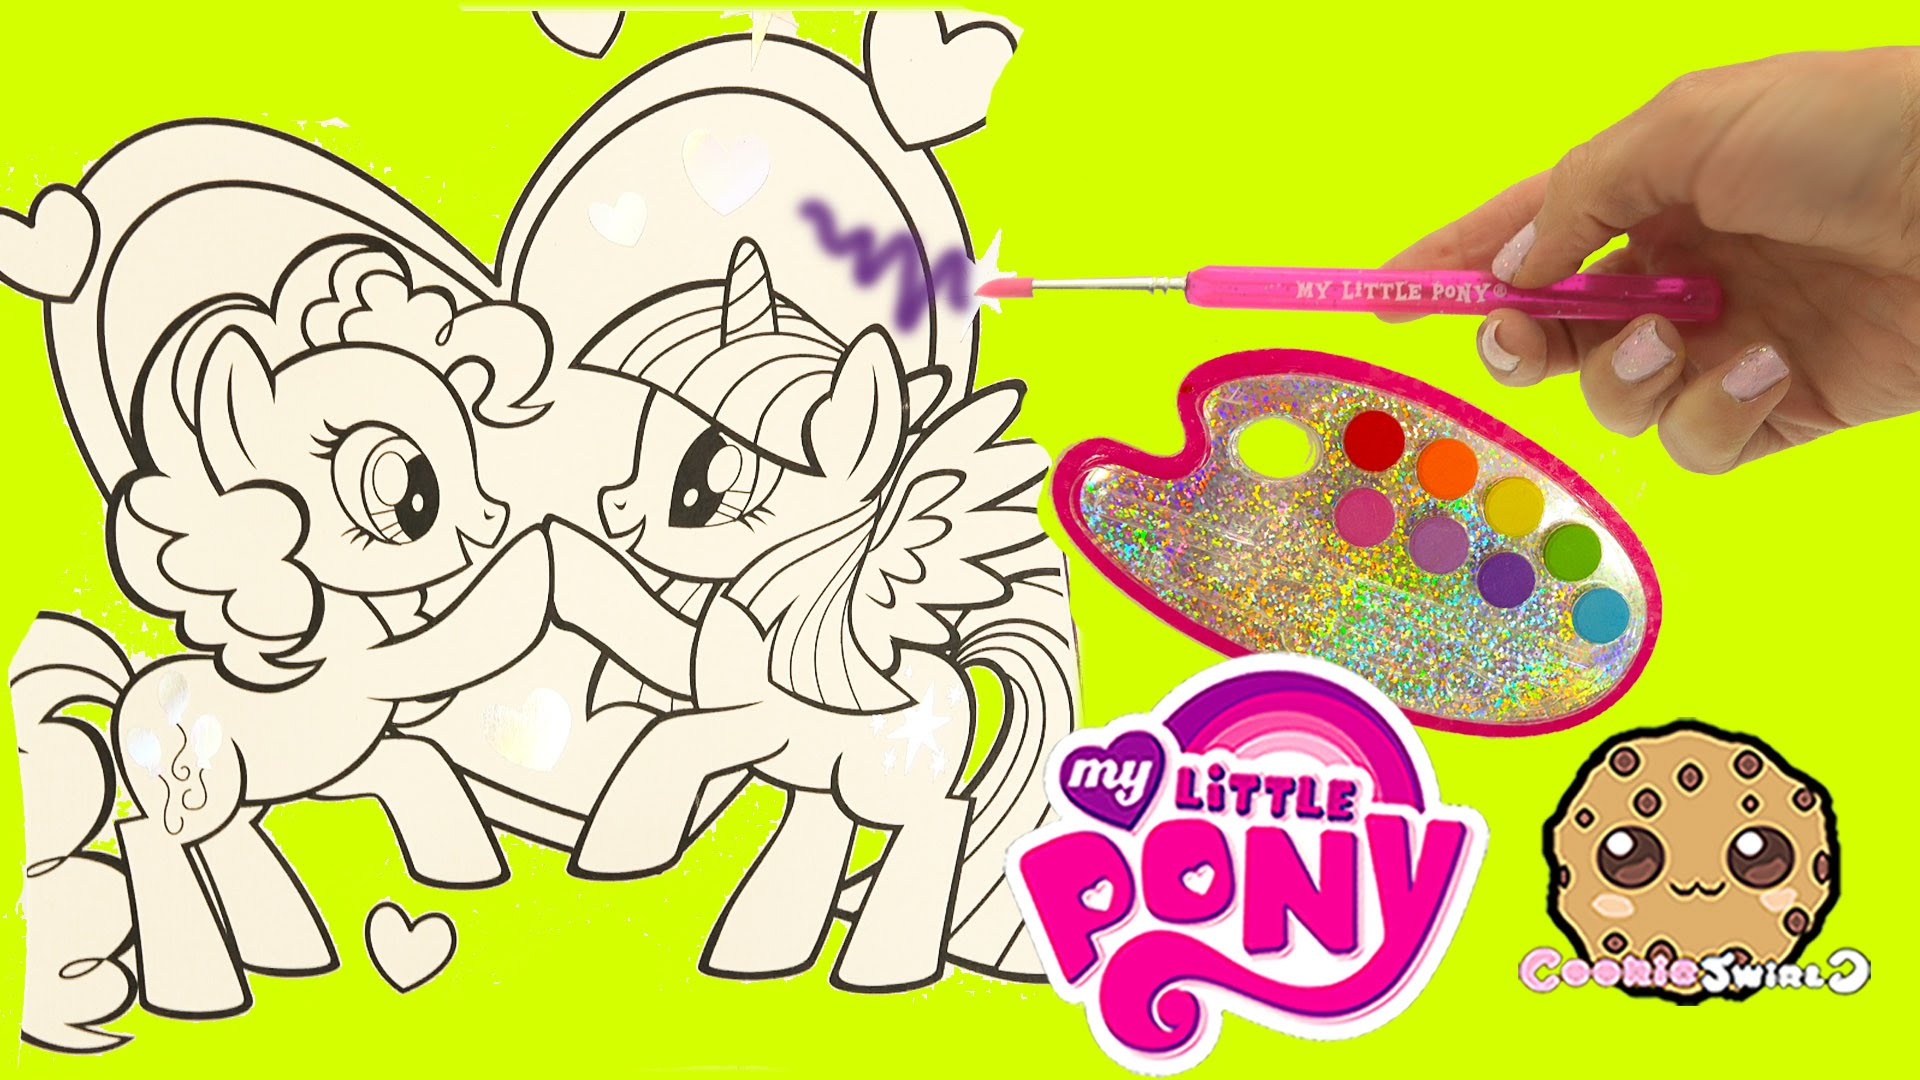 Drawn my little pony water MLP  Color Video Art